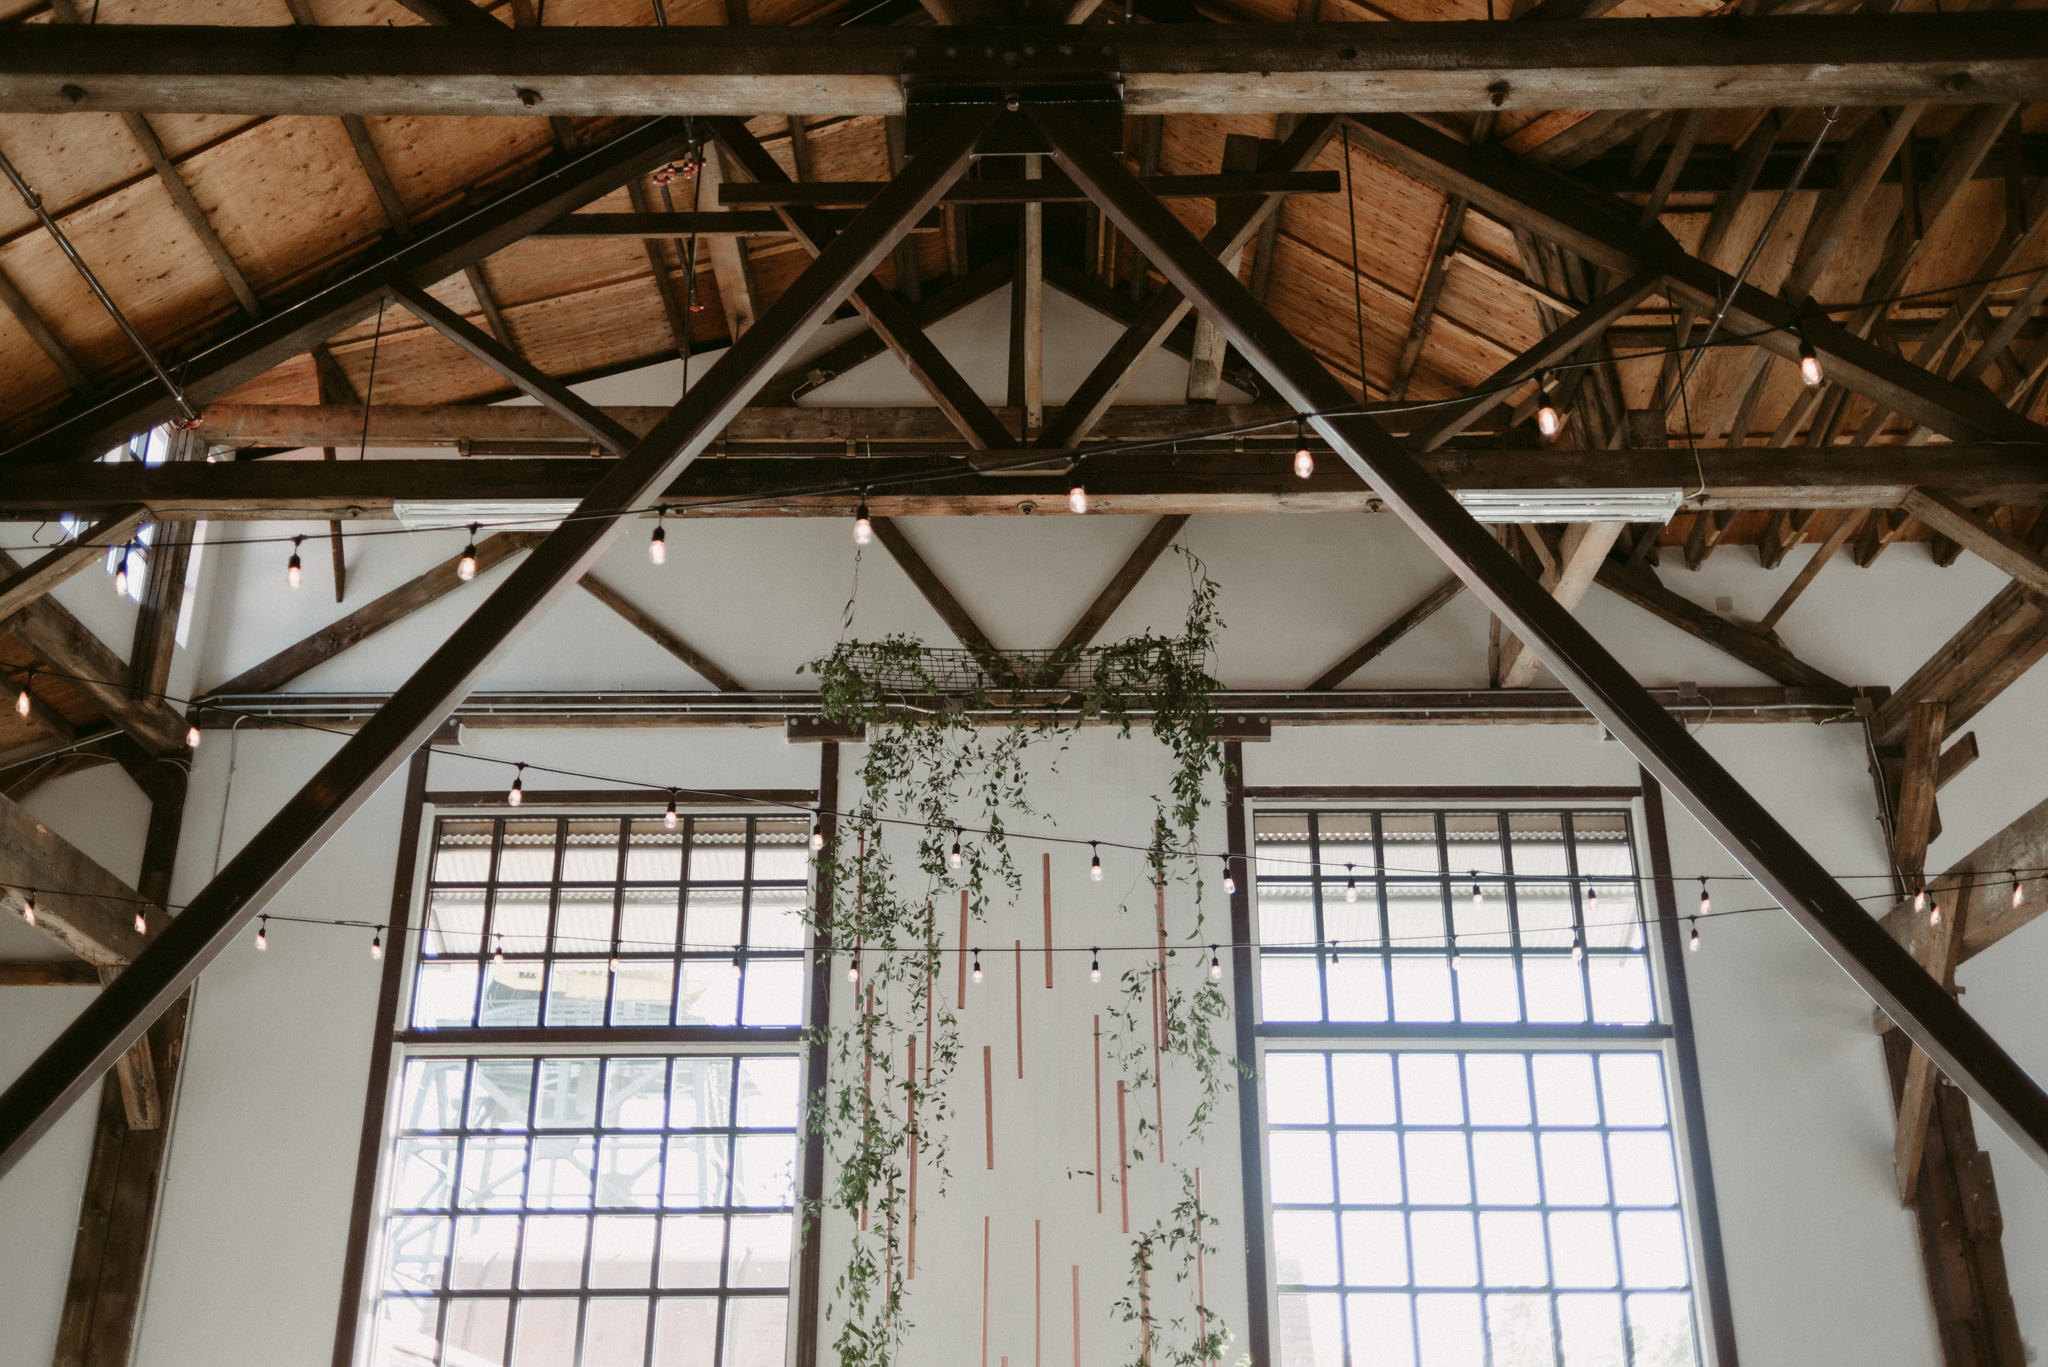 tall copper and vine backdrop installation at Pipe Shop wedding venue